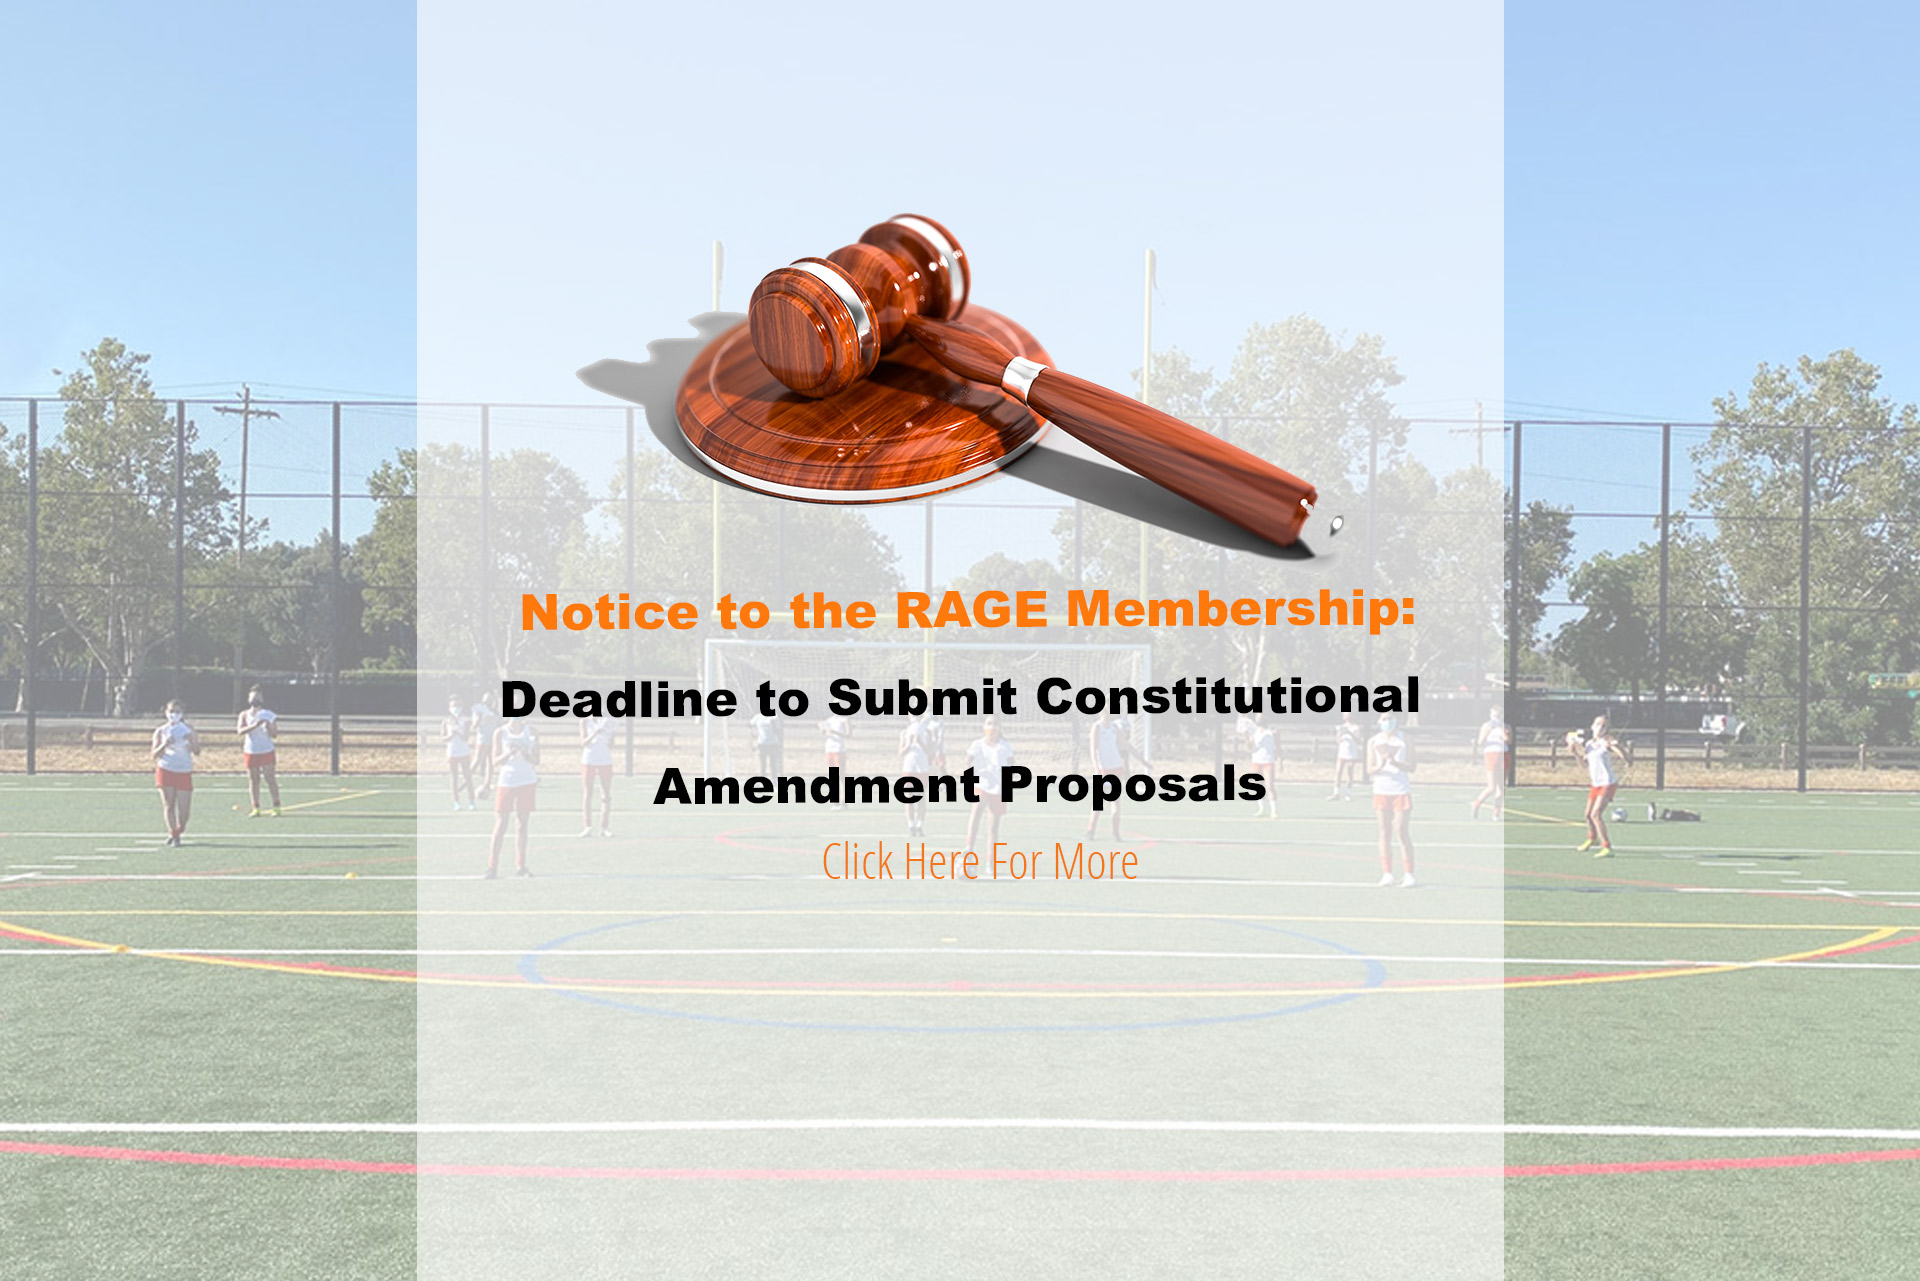 Deadline to submit constitutional changes